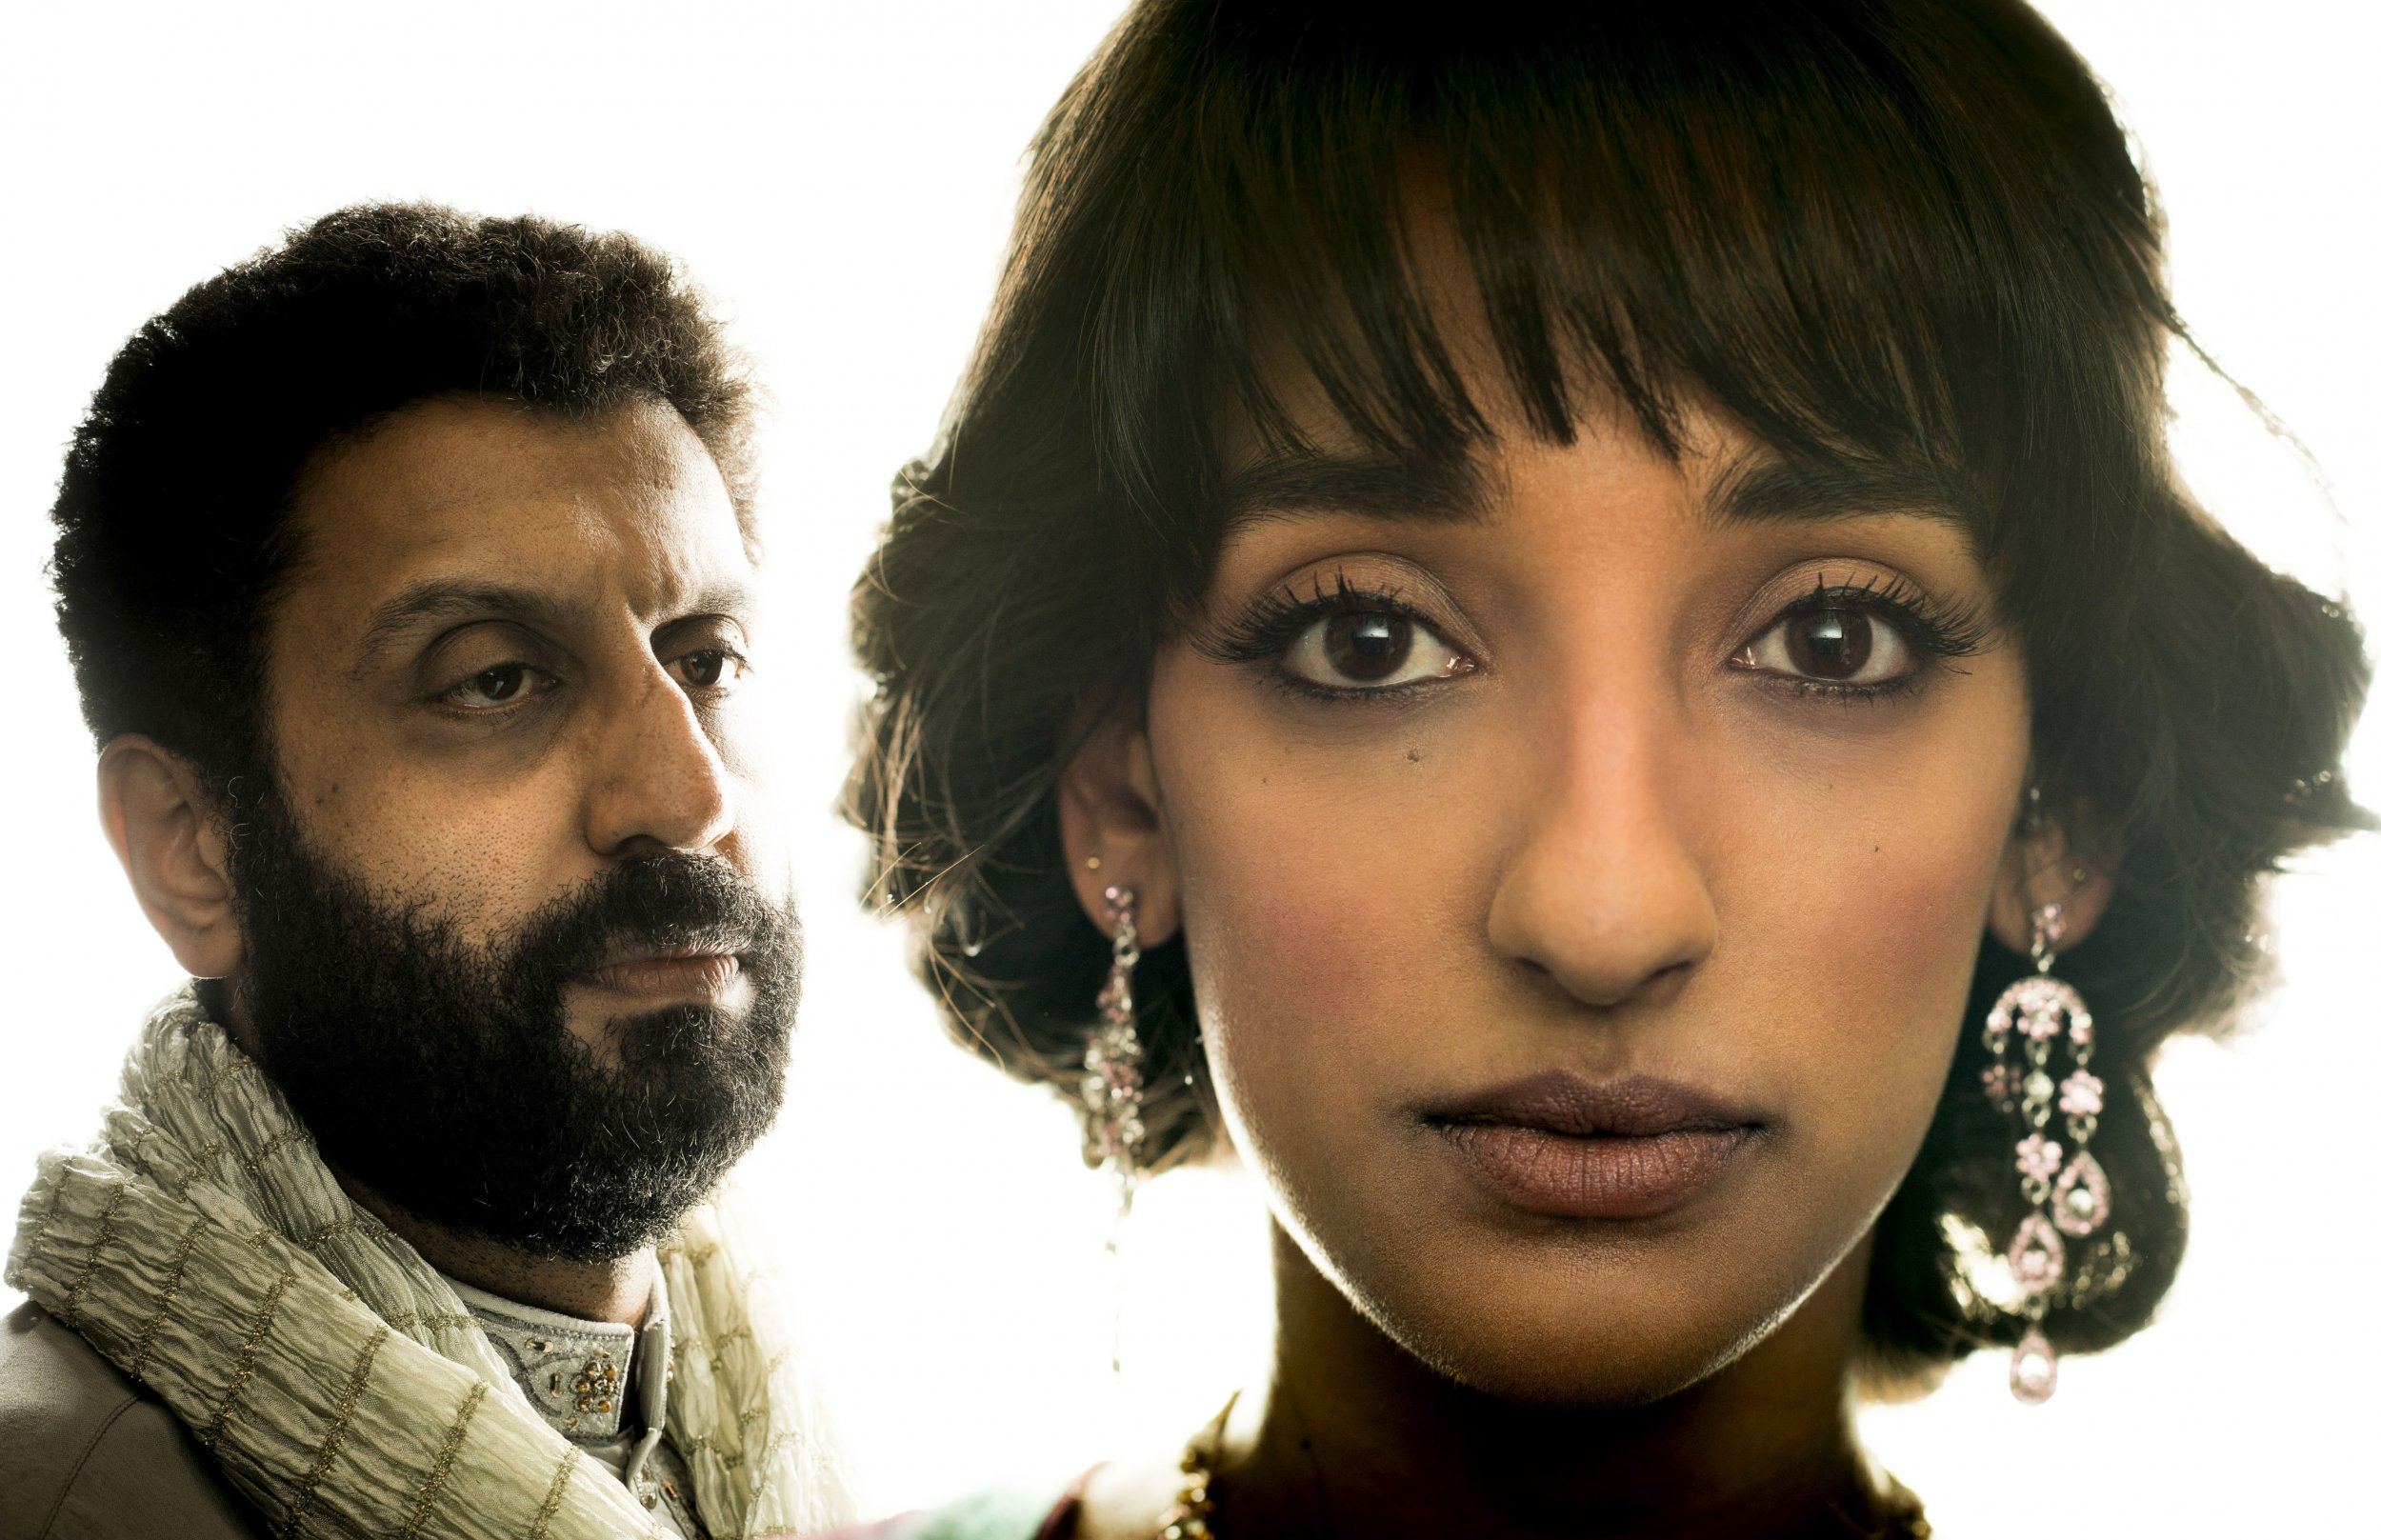 'Murdered By My Father': Inside the BBC's Honor Killing Drama